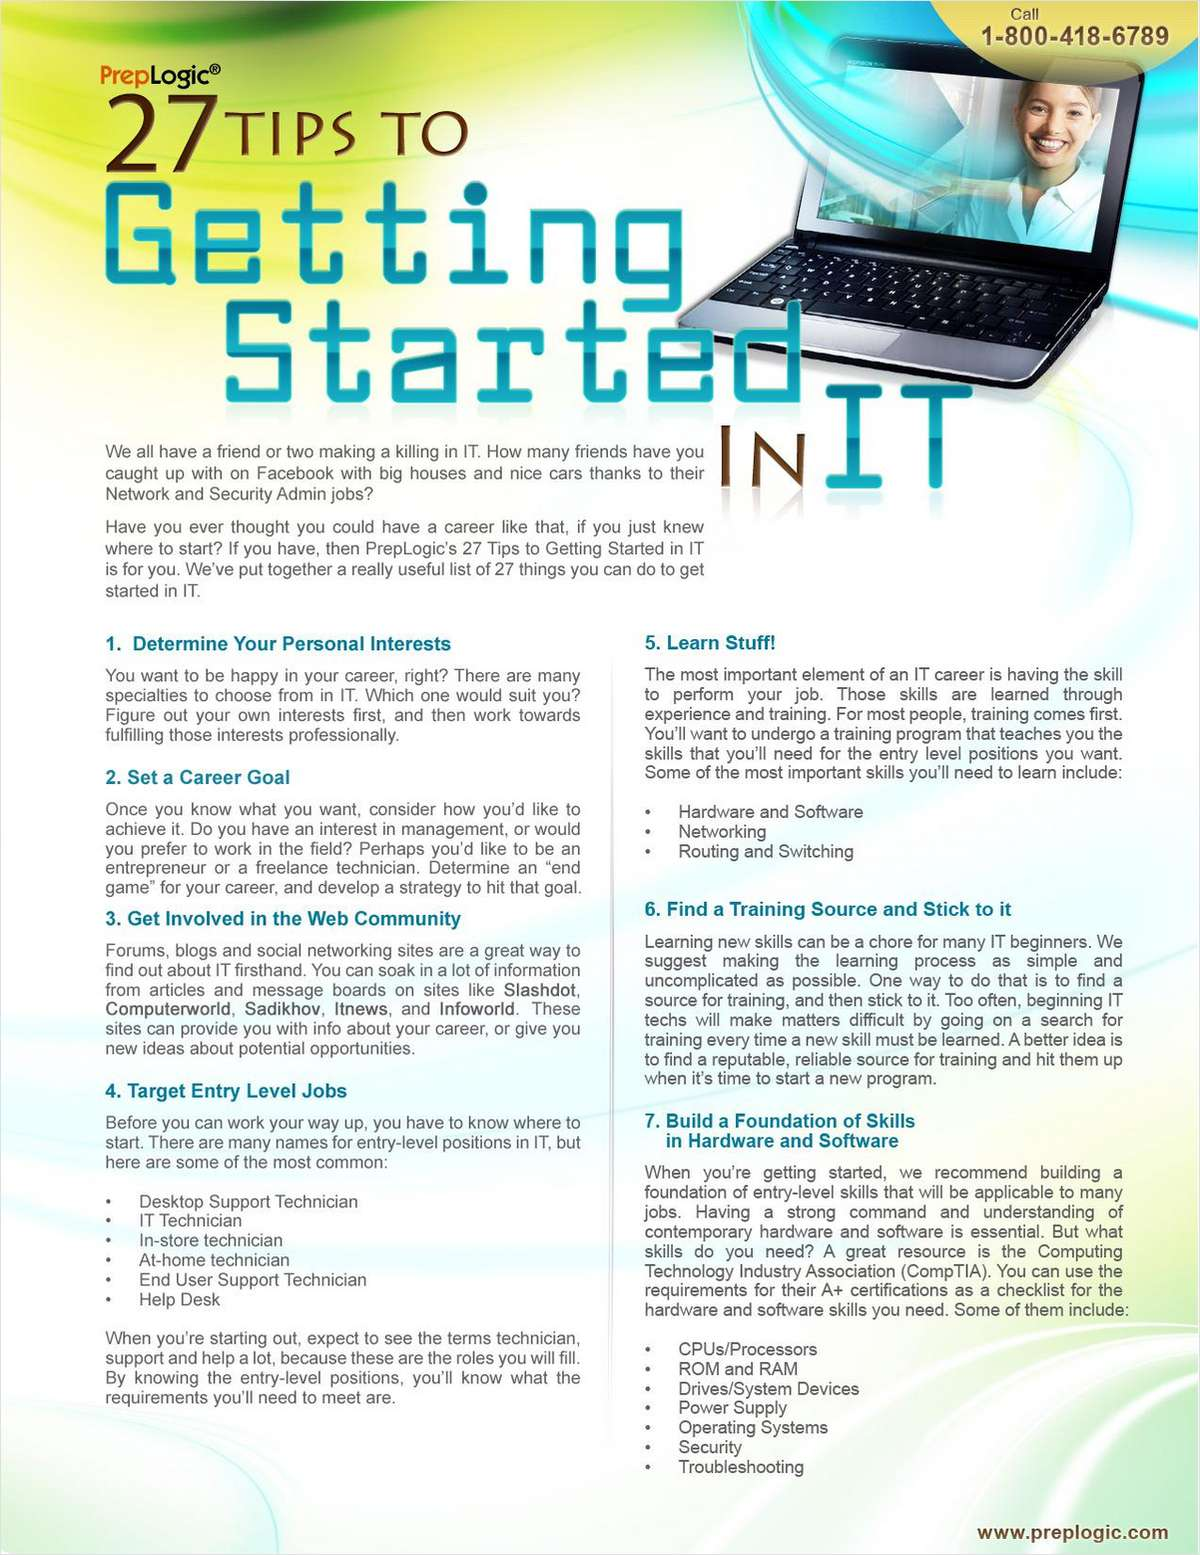 27 Tips for Getting Started in IT